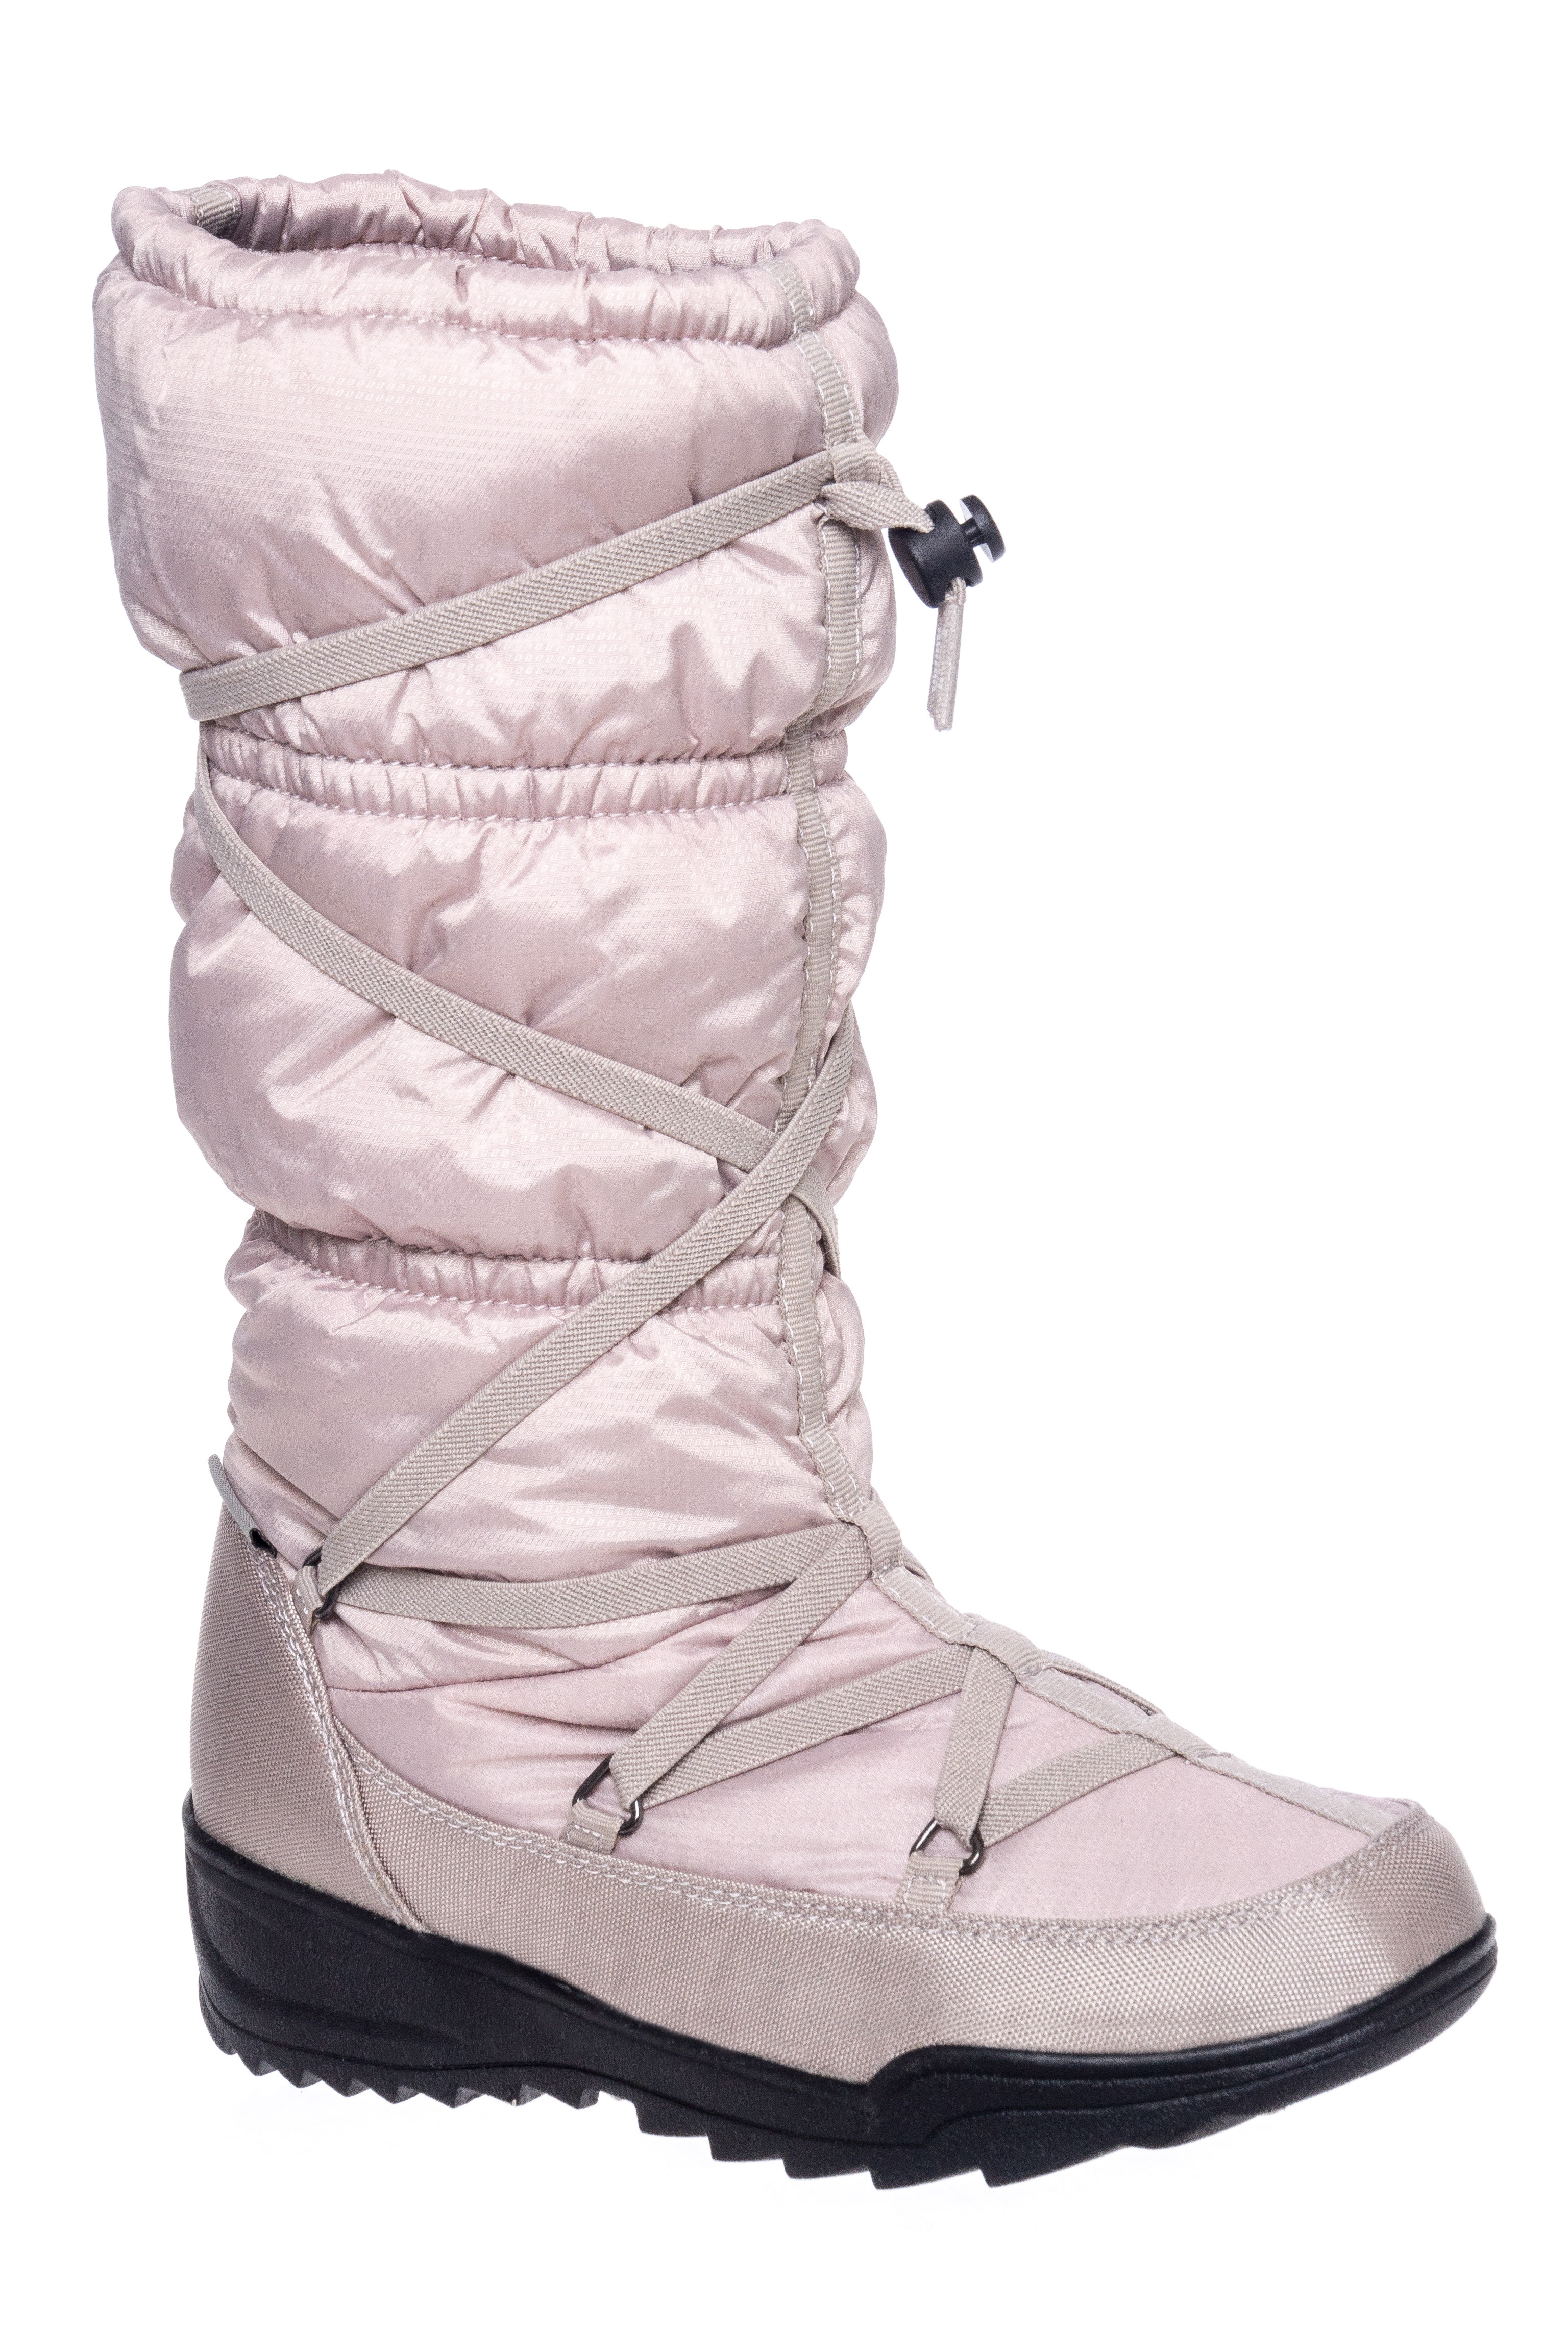 Kamik Luxembourg Mid-Calf Waterproof Boots - Oyster